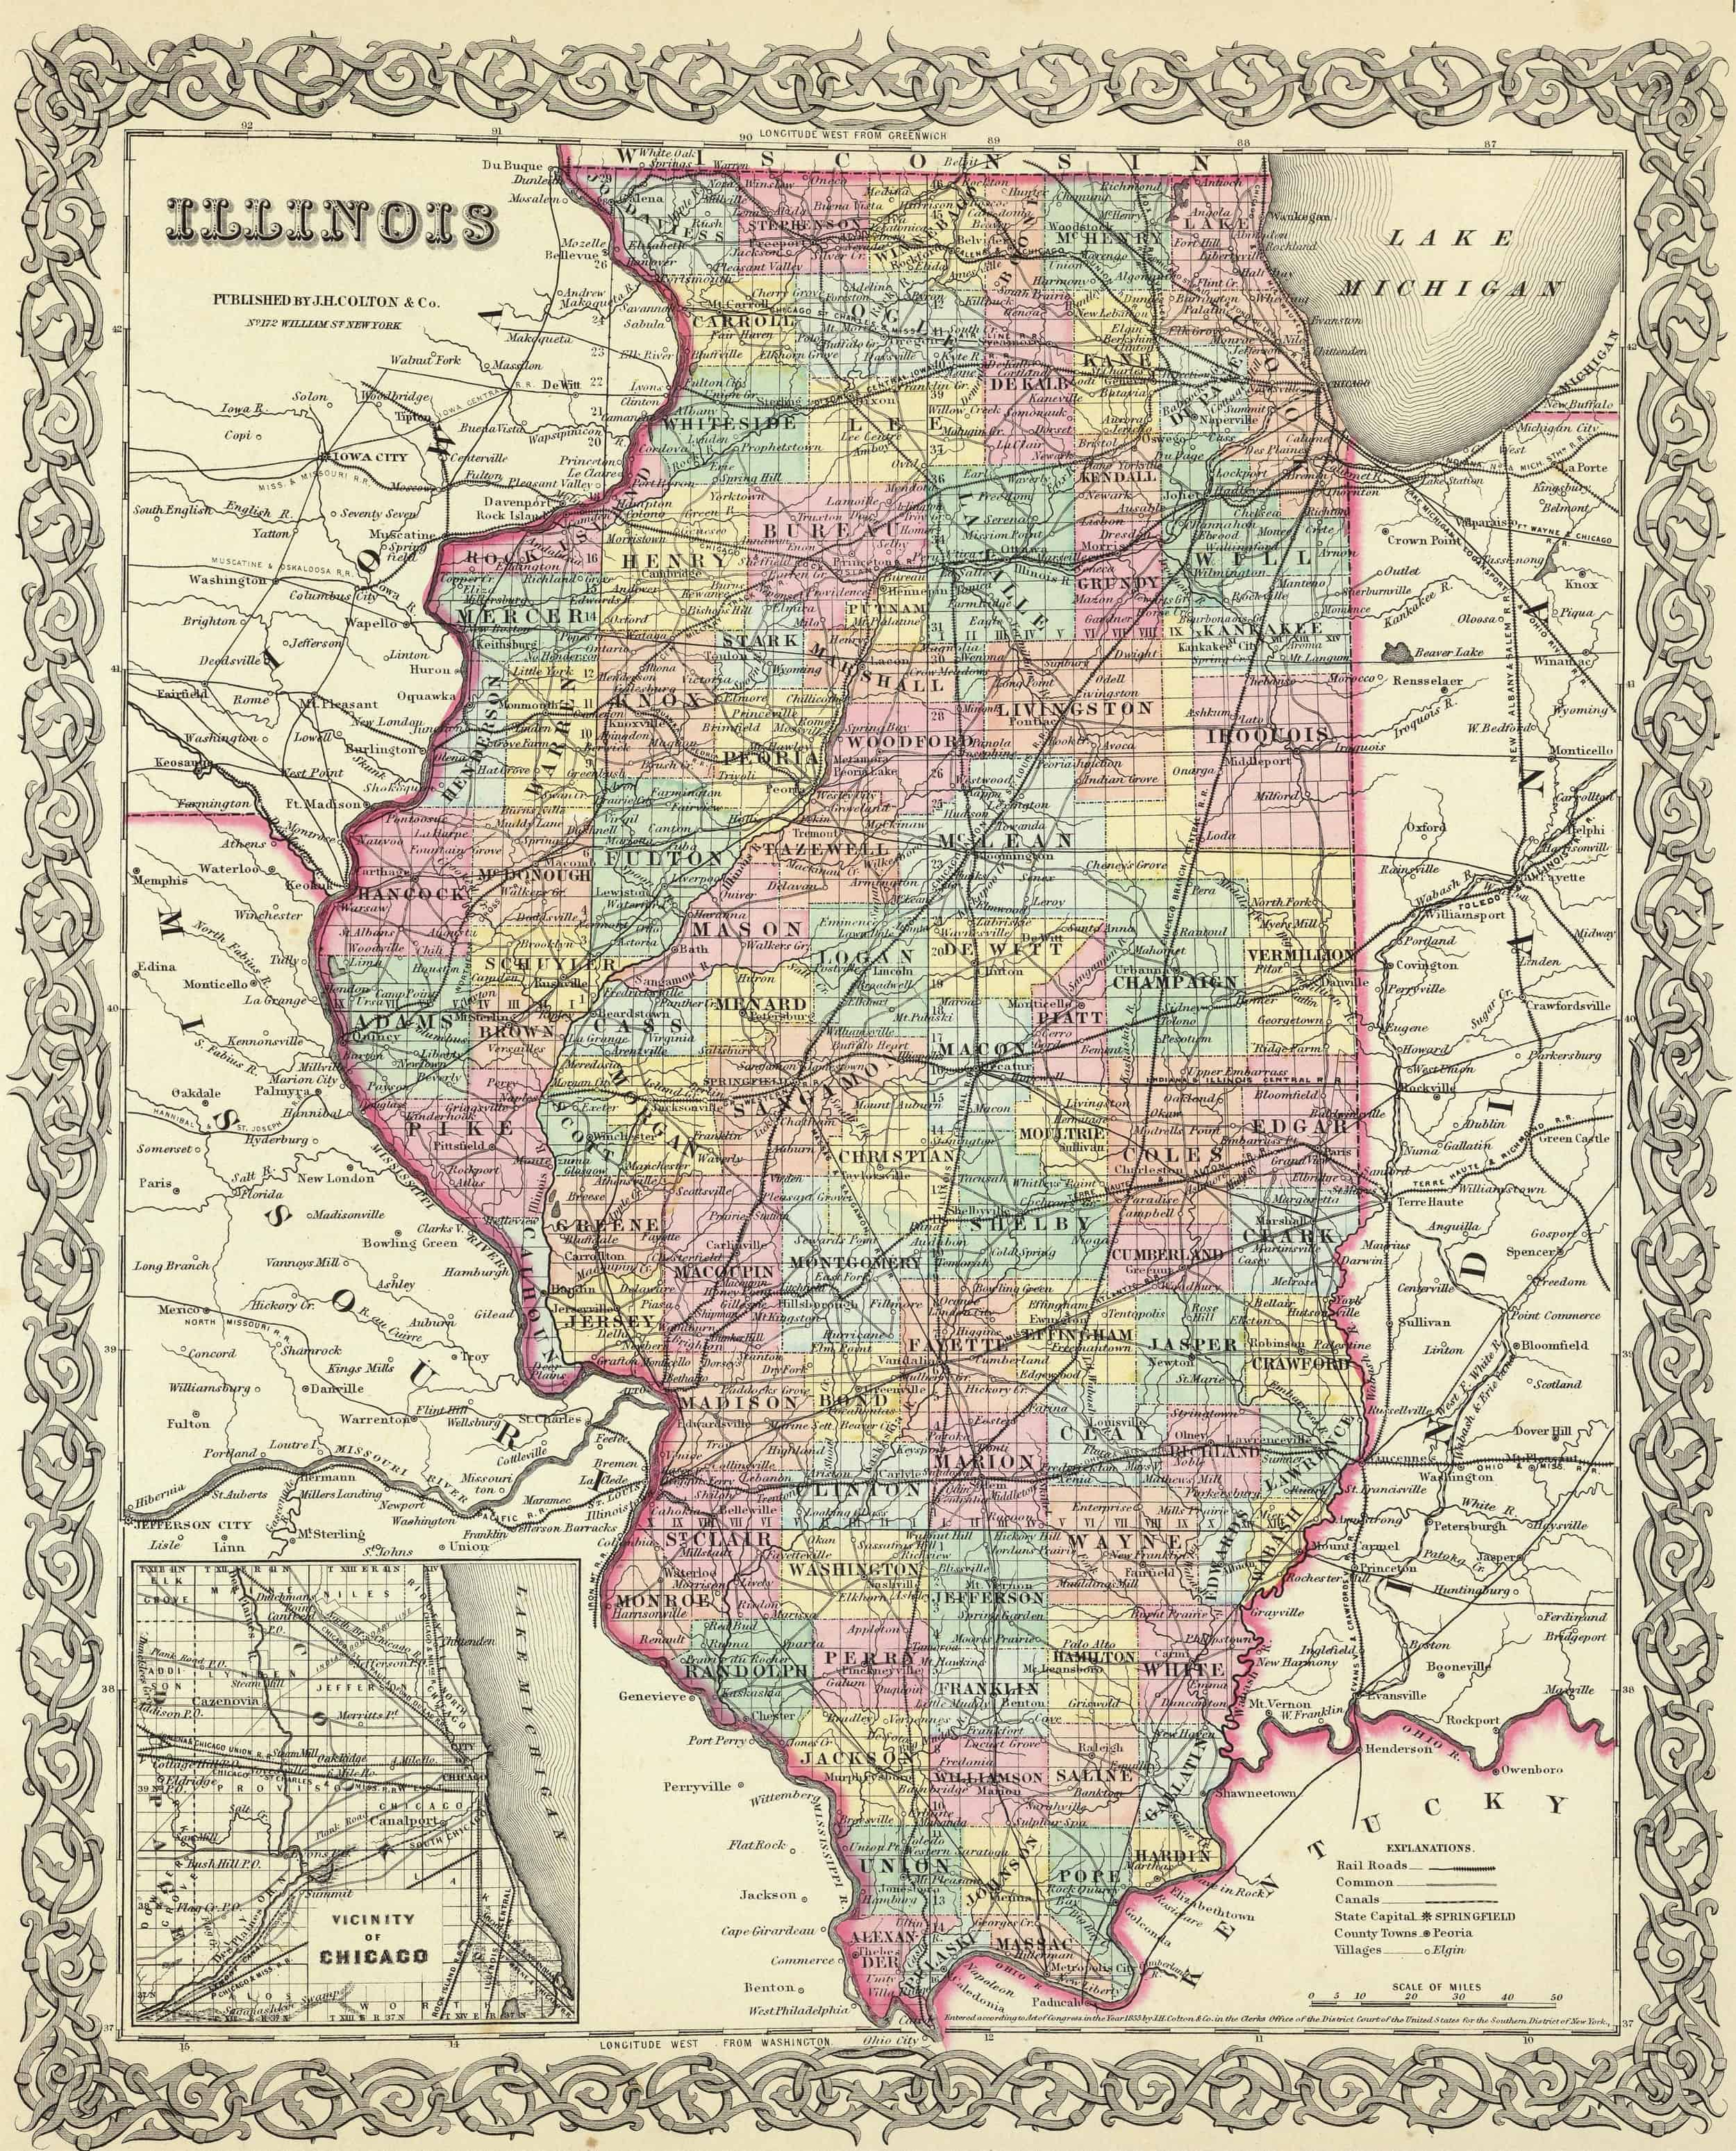 Old Historical City, County and State Maps of Illinios on map of vestaburg pa, map of lyons pa, map of versailles pa, map of lamar pa, map of needmore pa, map of throop pa, map of fredericktown pa, map of hickory pa, map of plainfield township pa, map of spring mills pa, map of brighton township pa, map of german township pa, map of adams twp pa, map of fayette pa, map of new york pa, map of north penn pa, map of hopewell pa, map of ruffs dale pa, map of kempton pa, map of madison pa,